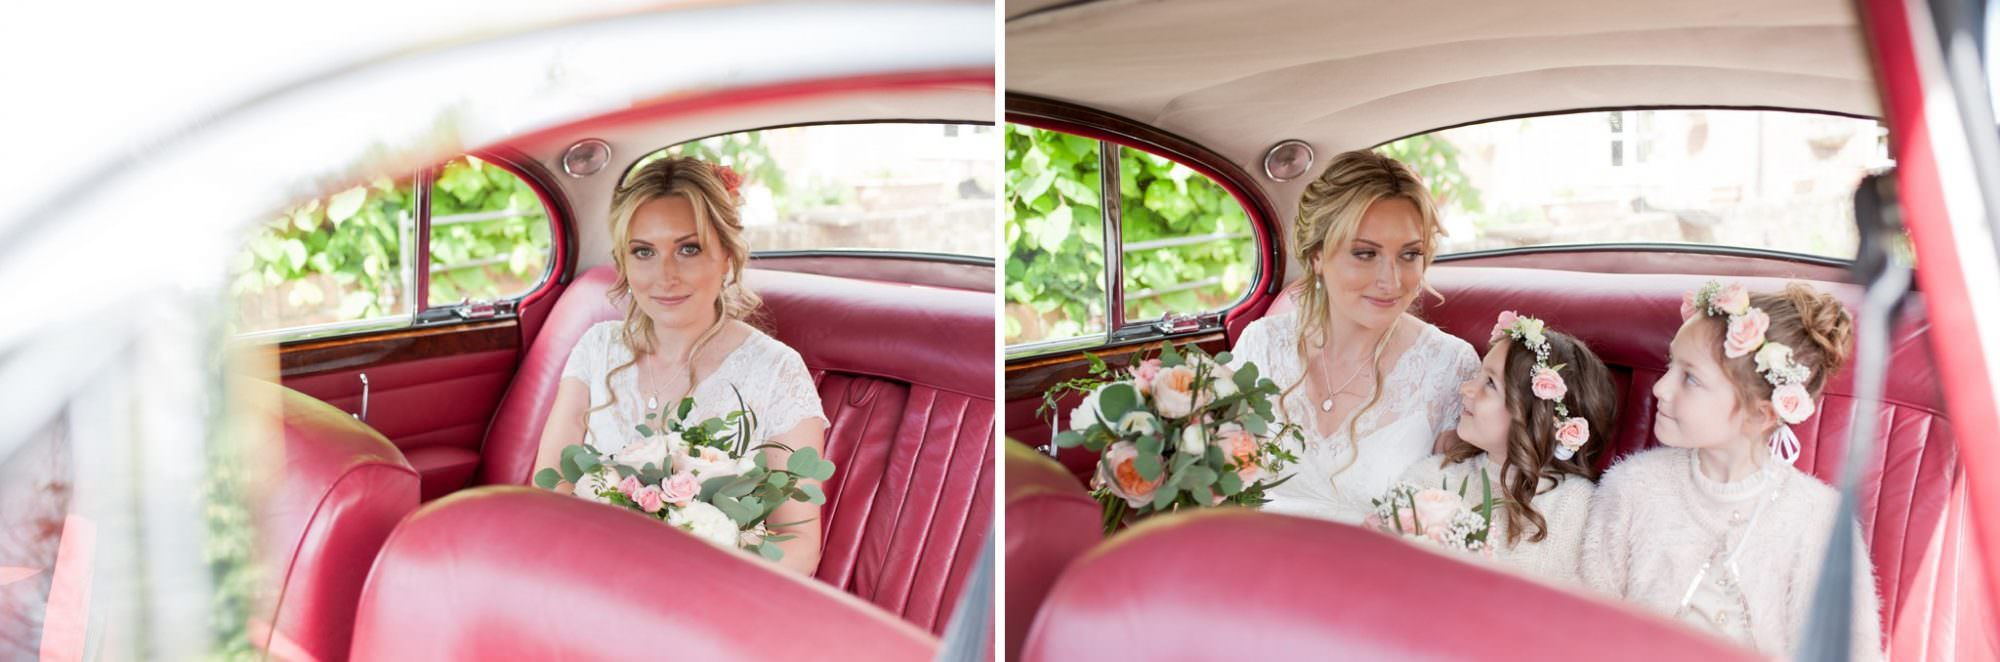 Photo of Hampshire Vintage Wedding Car in Red